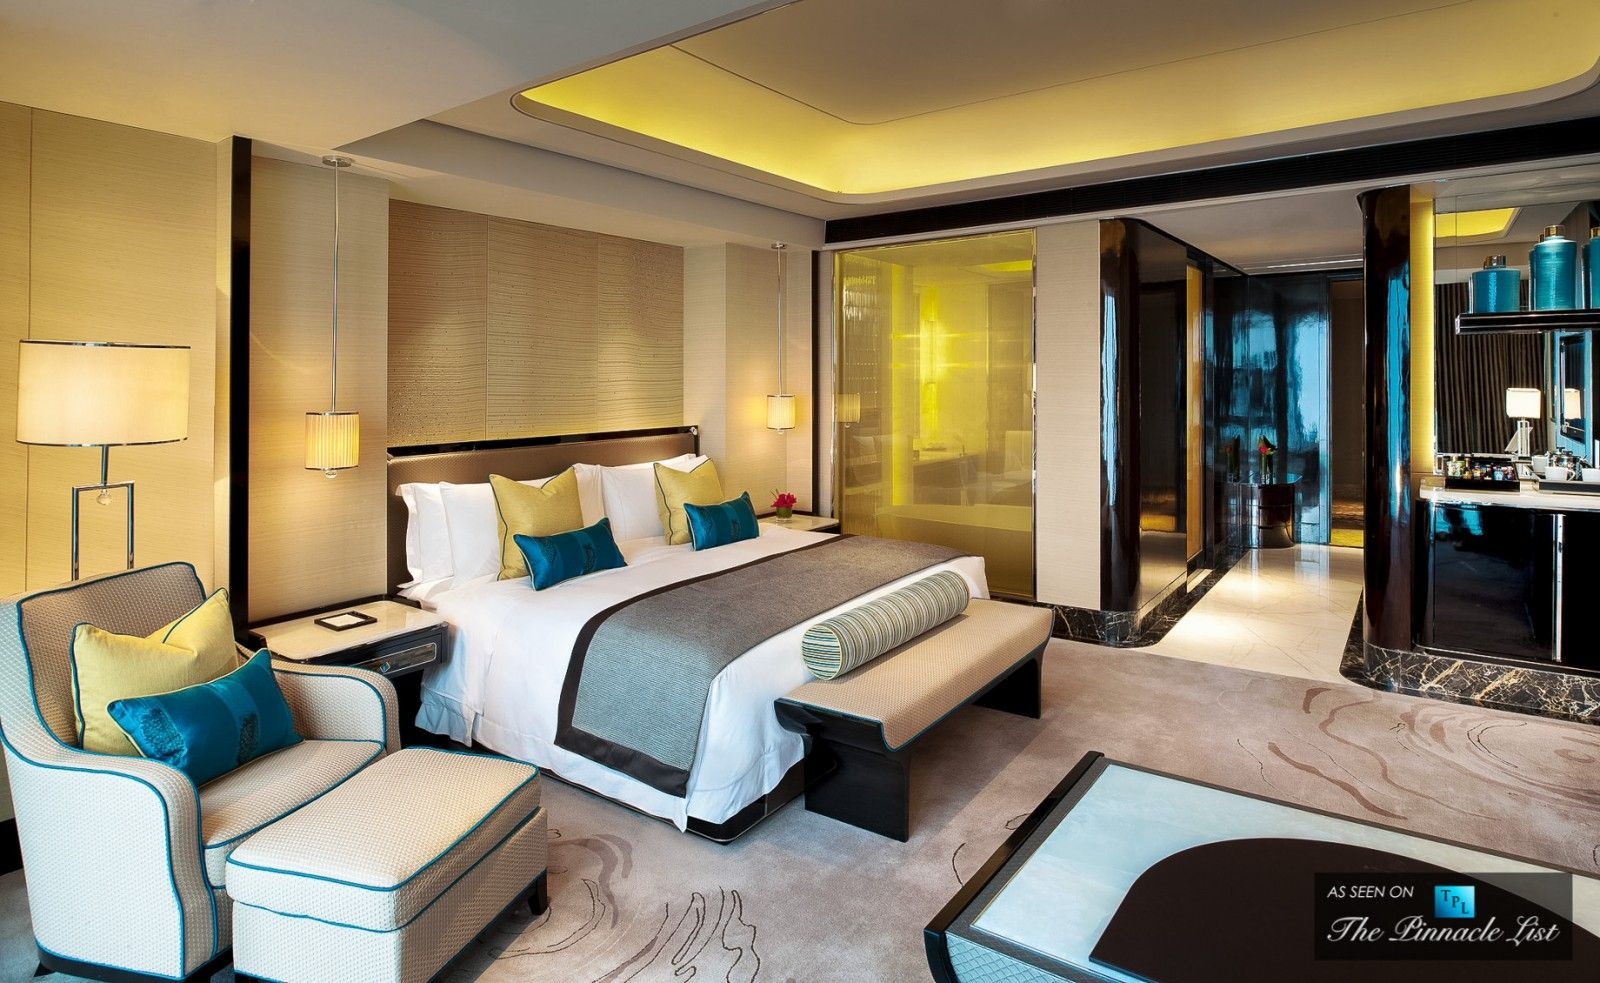 Comfort abounds in this hotel suite st regis luxury for Luxury hotel room interior design